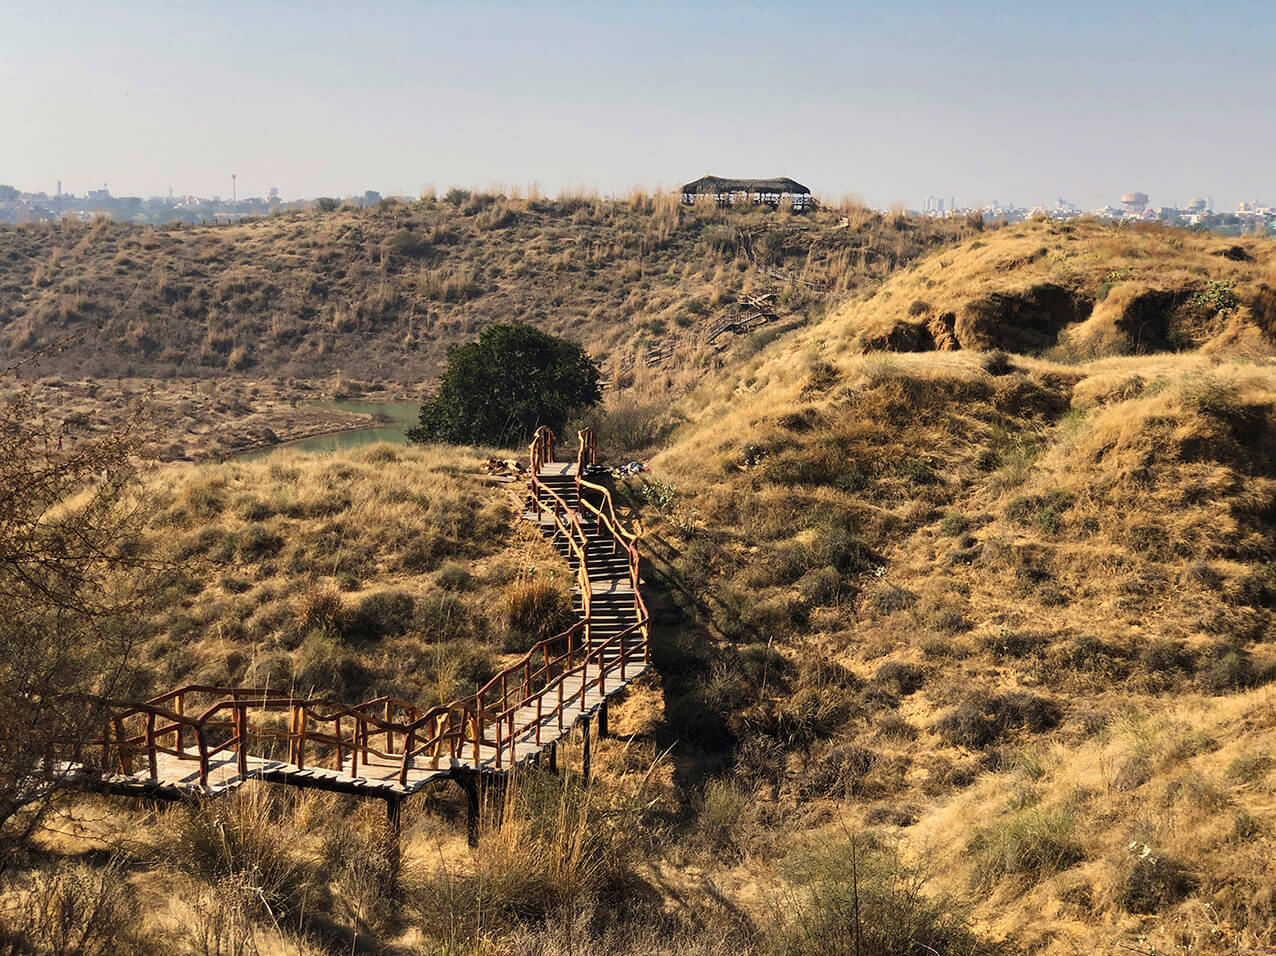 Winding staircases traversing the sandy 'marooned dunes' of Kishan Bagh | Cross Border Conversations | Pradip Krishen X Prof. Anne Feenstra | STIR X LOCO Design